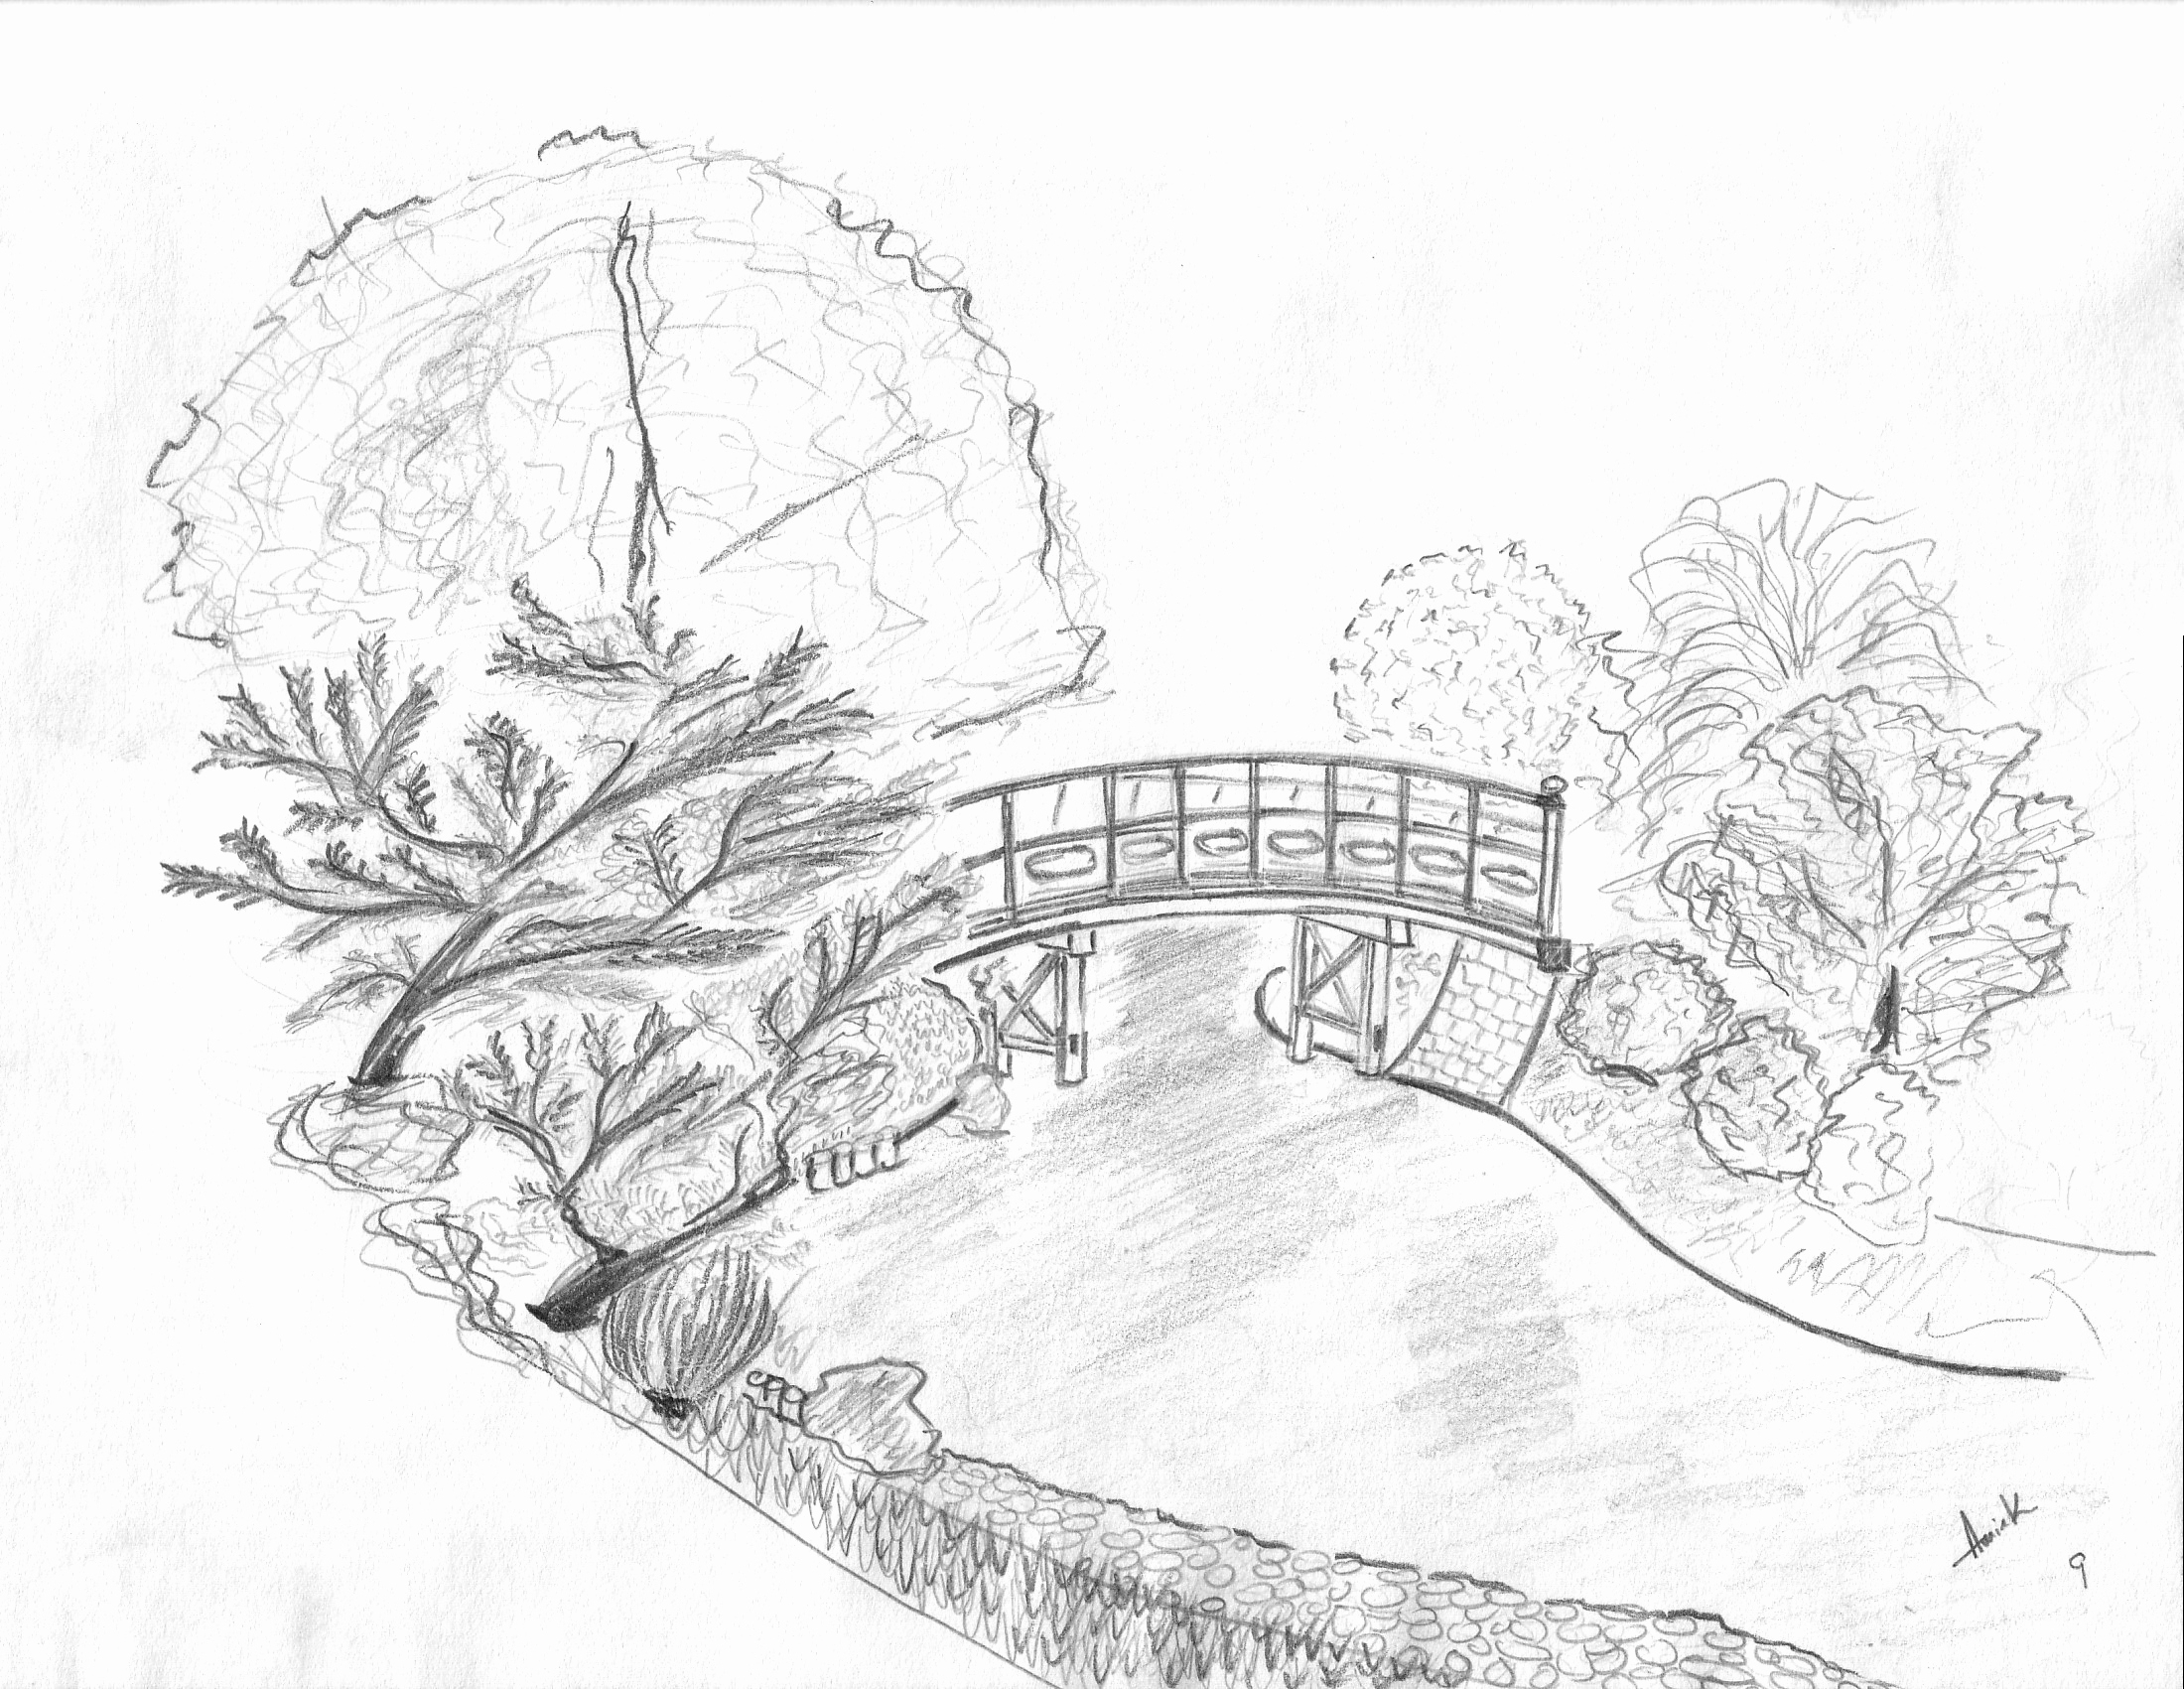 Elite Picture 27 Of 49 - Landscape Drawing Ideas Elegant Landscape with Landscape Drawing Ideas